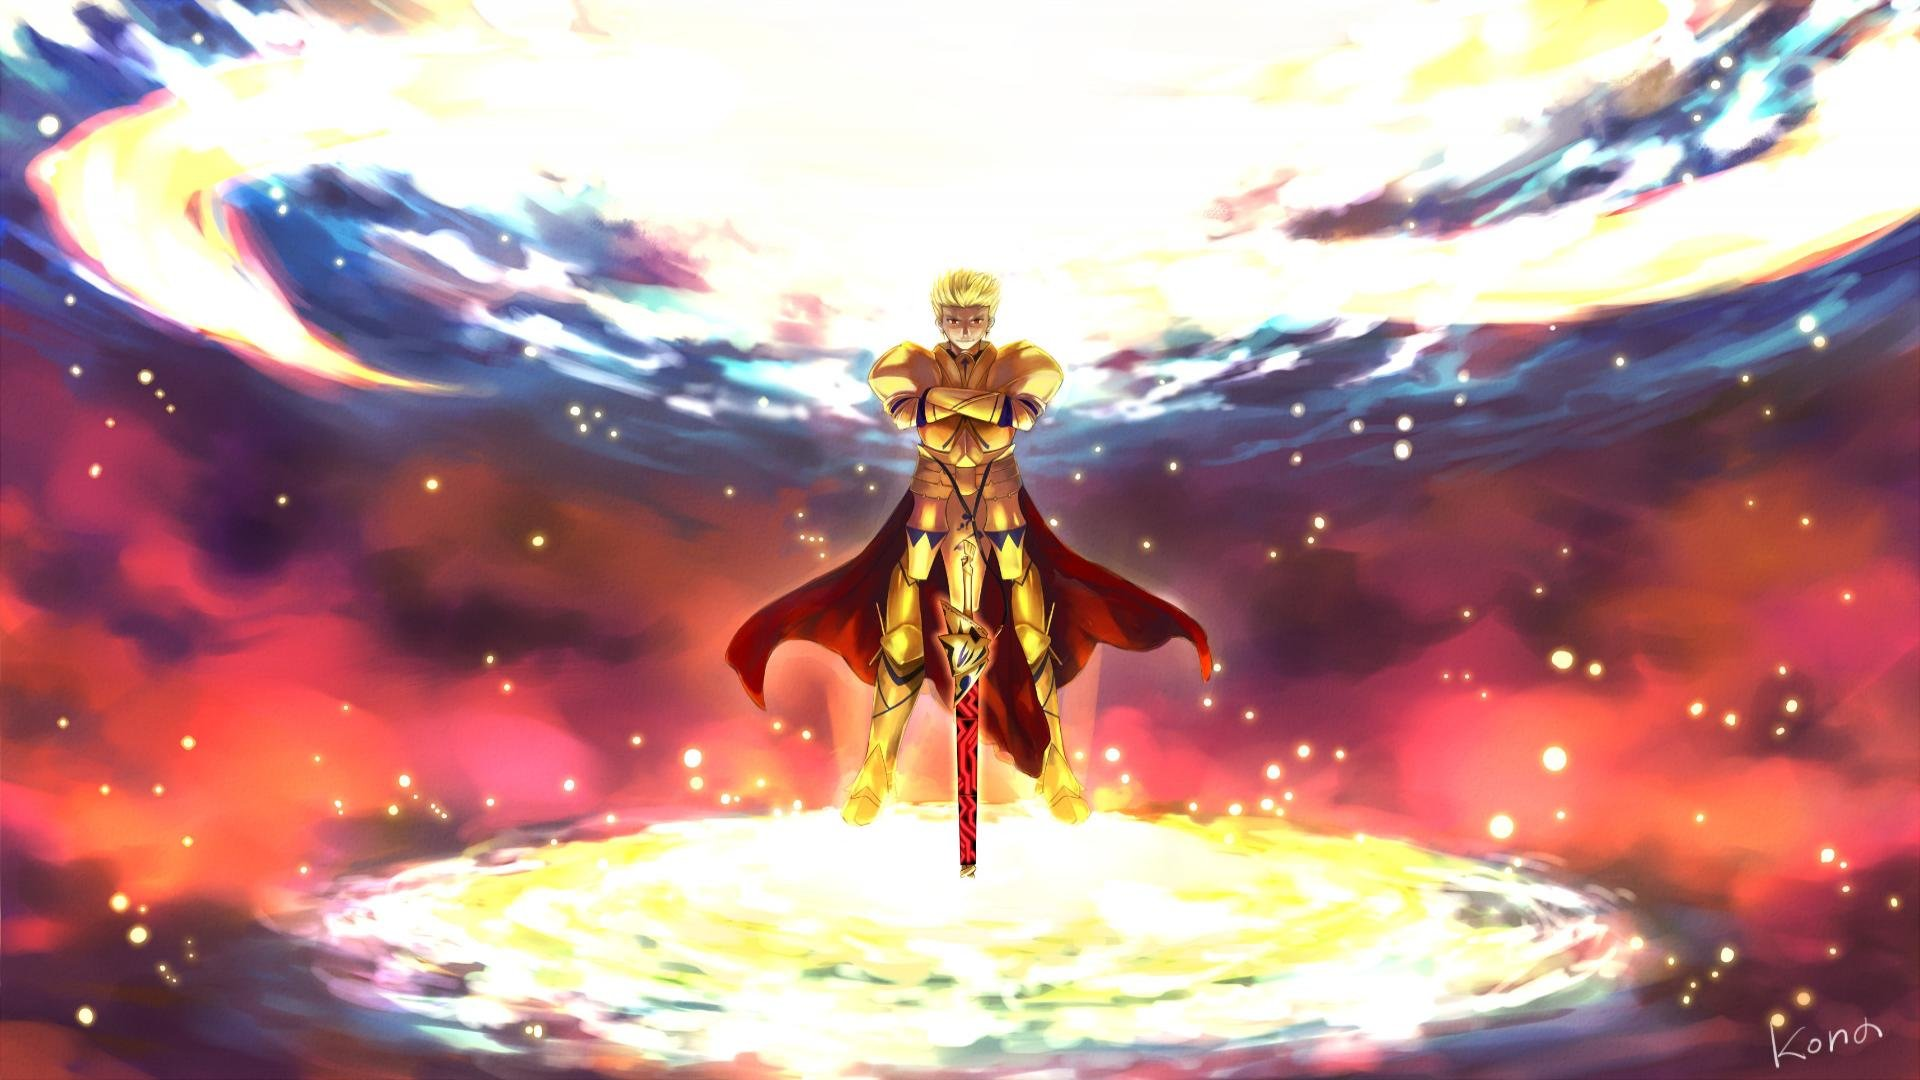 Gilgamesh Fatestay Night Wallpapers 1920x1080 Full Hd